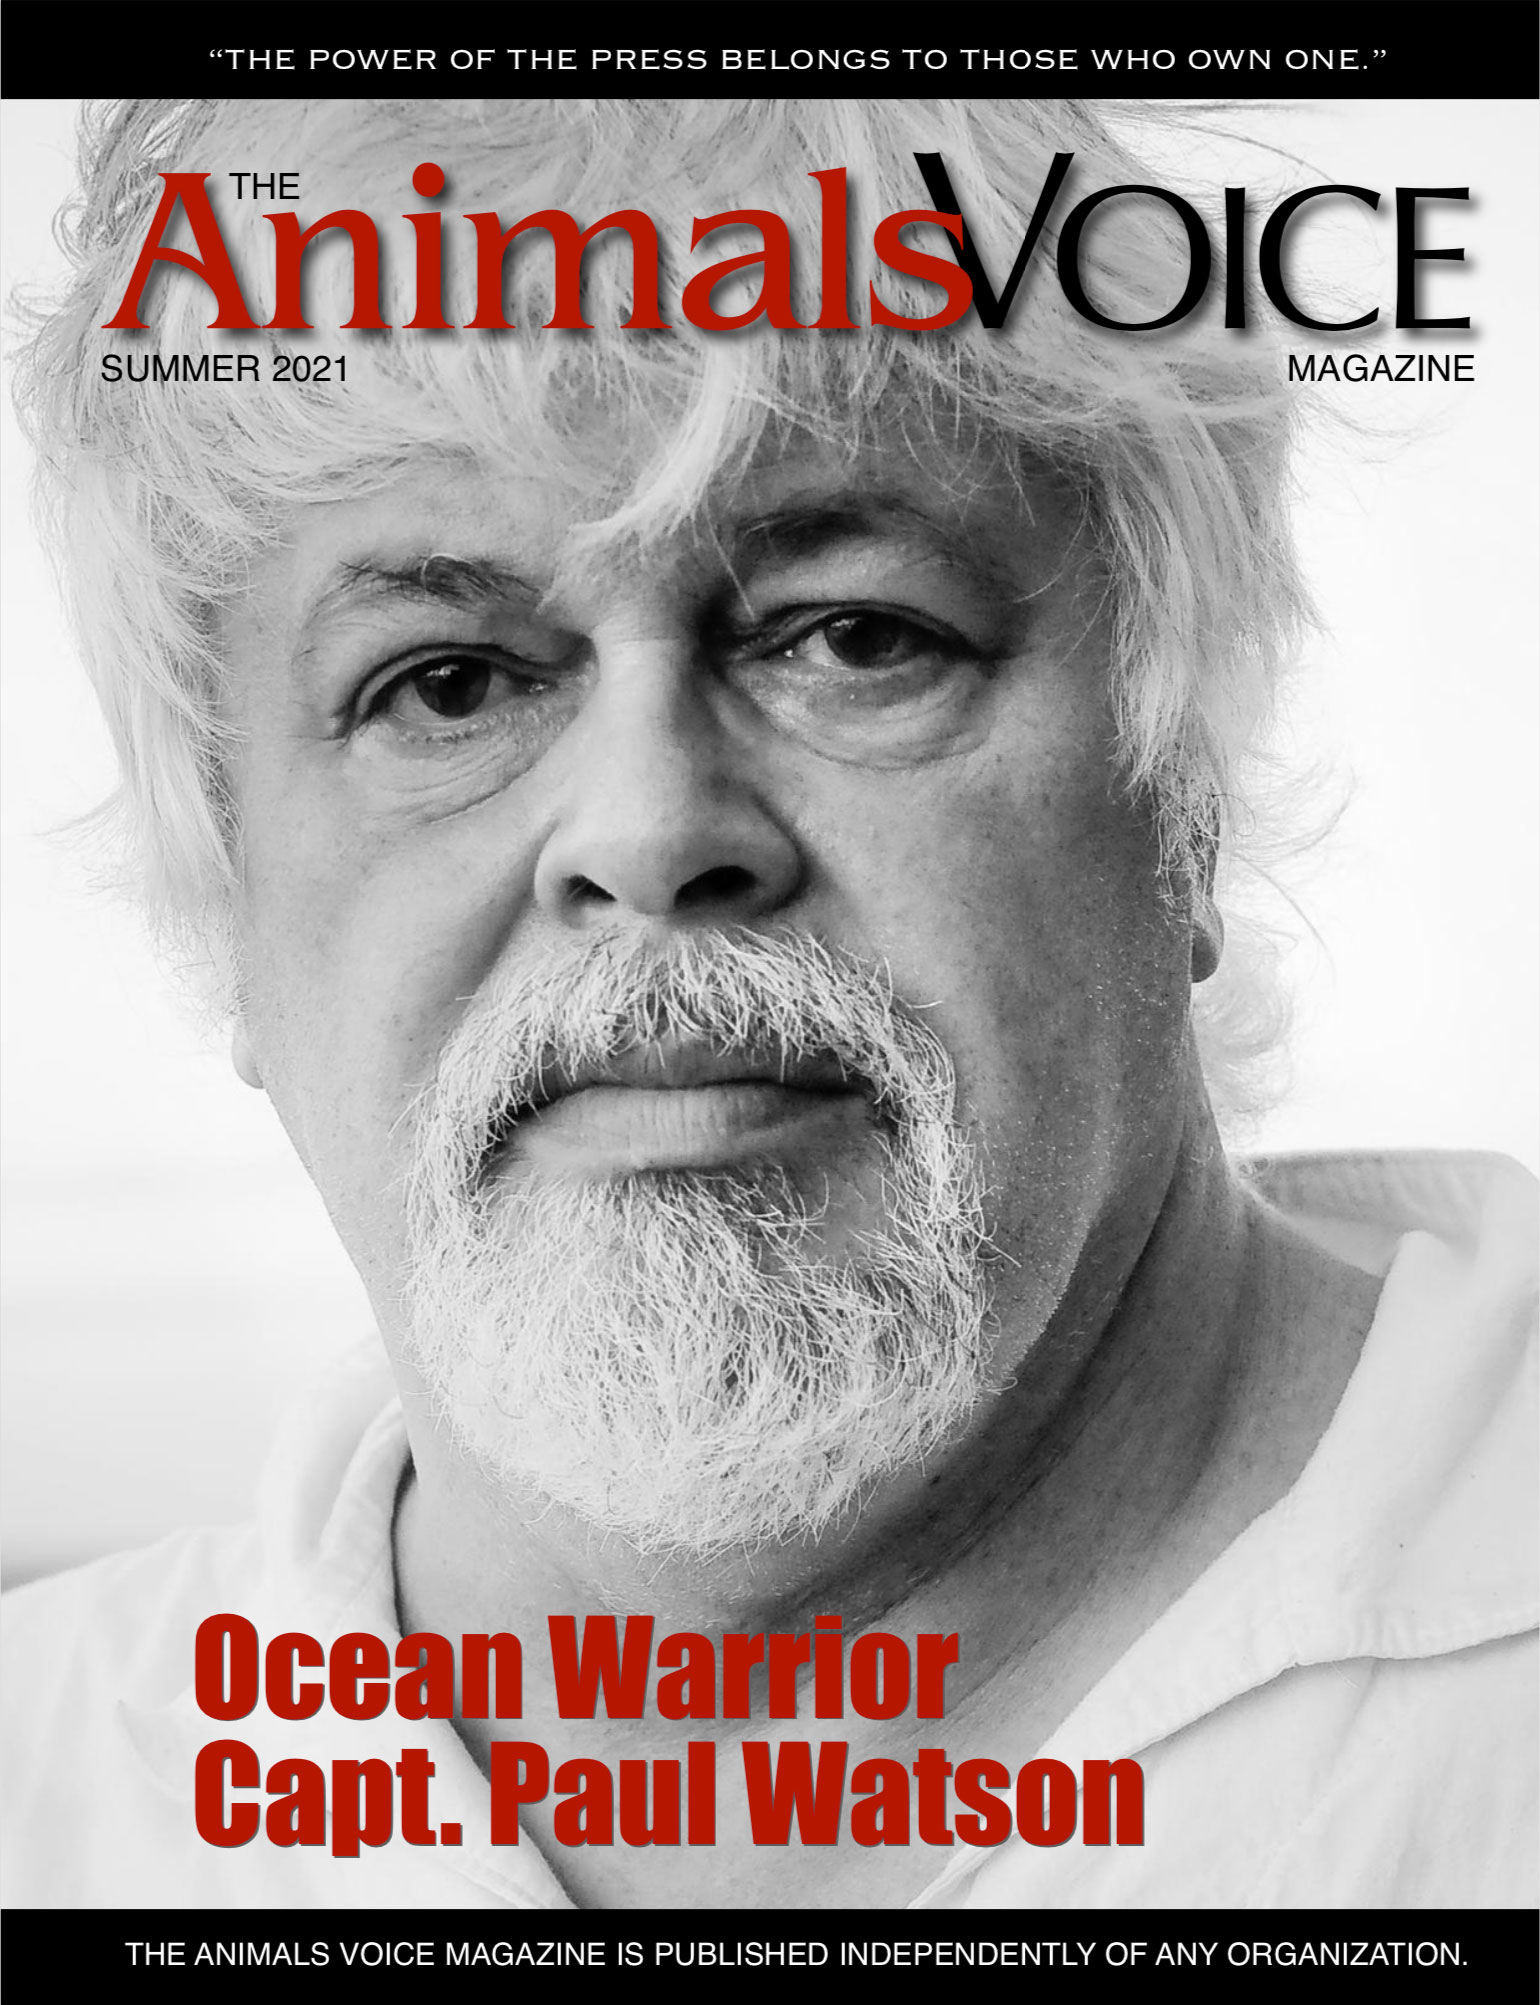 Cover of summer 2021 Animals Voice with Paul Watson